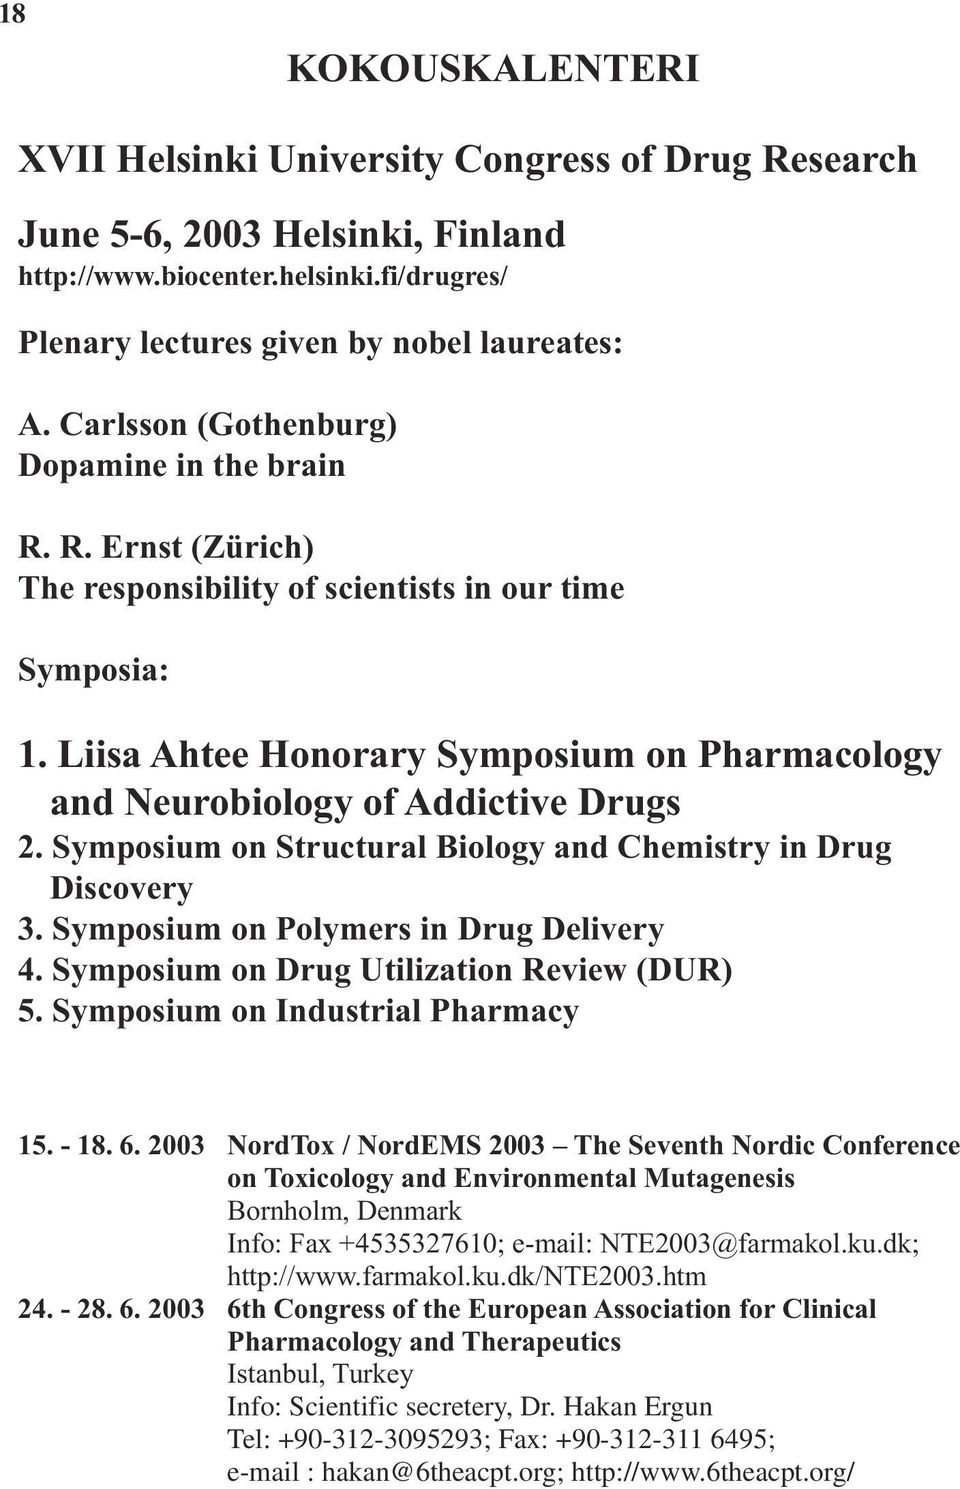 Liisa Ahtee Honorary Symposium on Pharmacology and Neurobiology of Addictive Drugs 2. Symposium on Structural Biology and Chemistry in Drug Discovery 3. Symposium on Polymers in Drug Delivery 4.